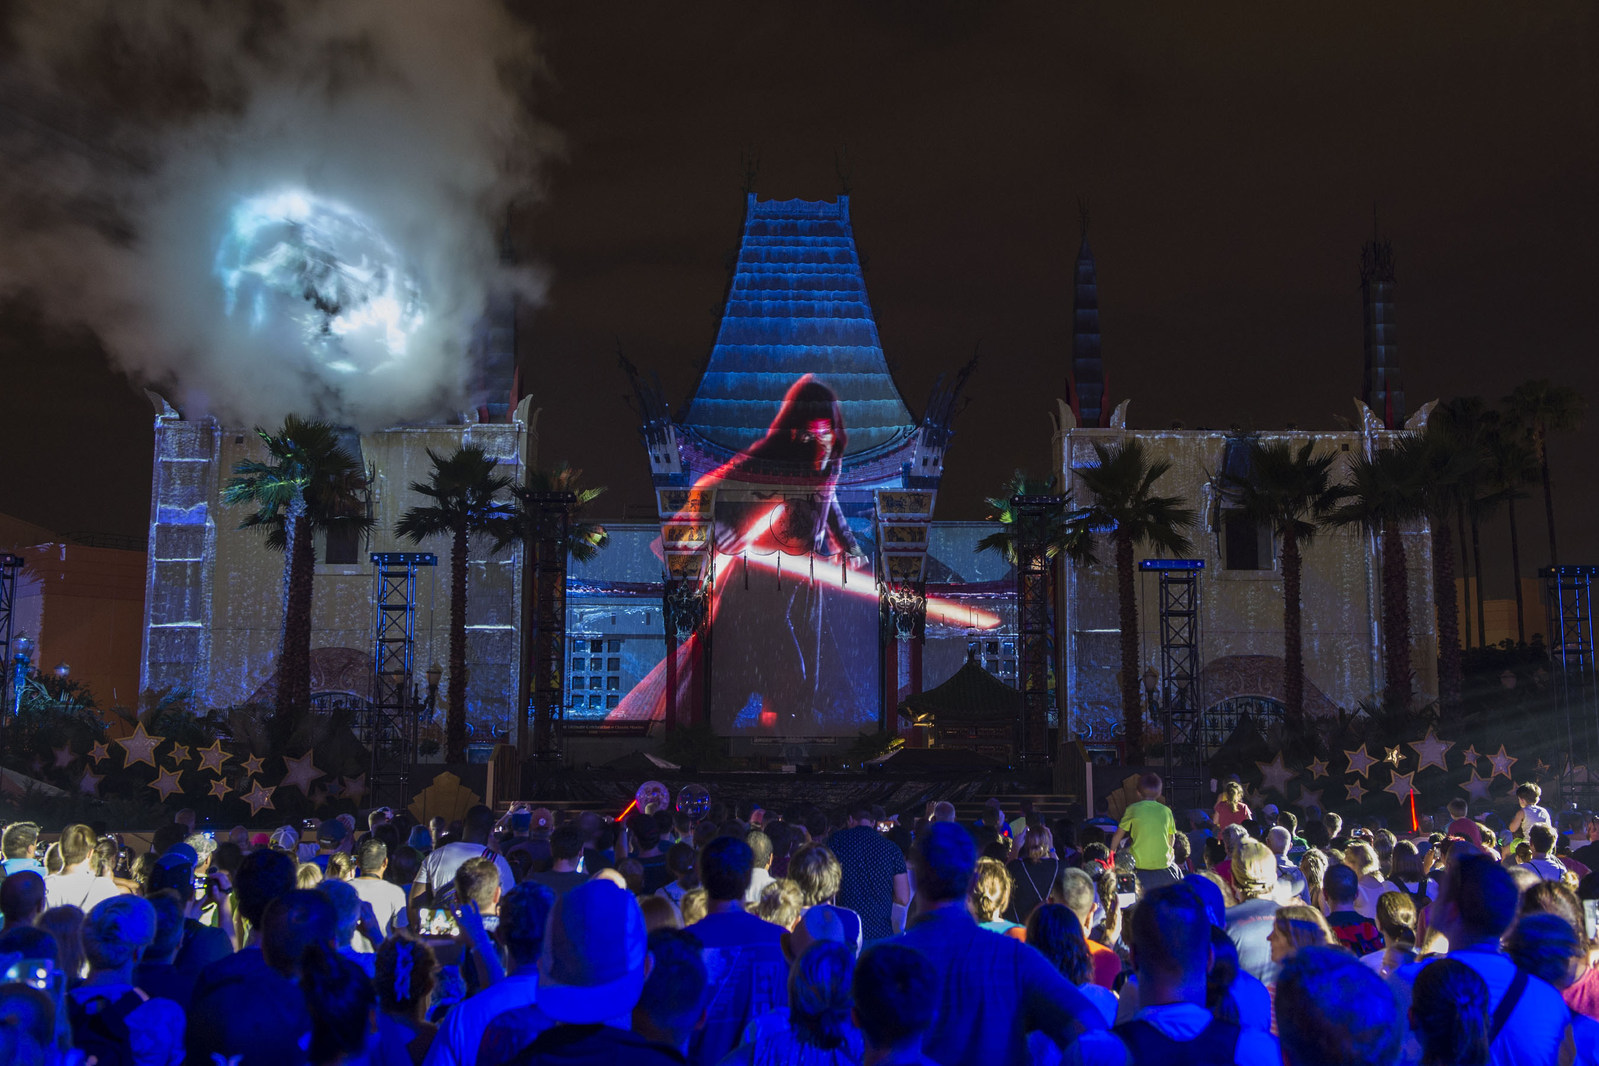 Star Wars: Galactic Nights, a special event at Disney's Hollywood Studios, returns Dec. 16, 2017 for one evening only with out-of-this-world entertainment, character encounters and more. Guests will be treated Hollywood-style to a red carpet arrival, iconic attractions with little to no wait time, amazing fireworks and projections, and experts sharing details about the Star Wars expansion coming to Disney's Hollywood Studios.